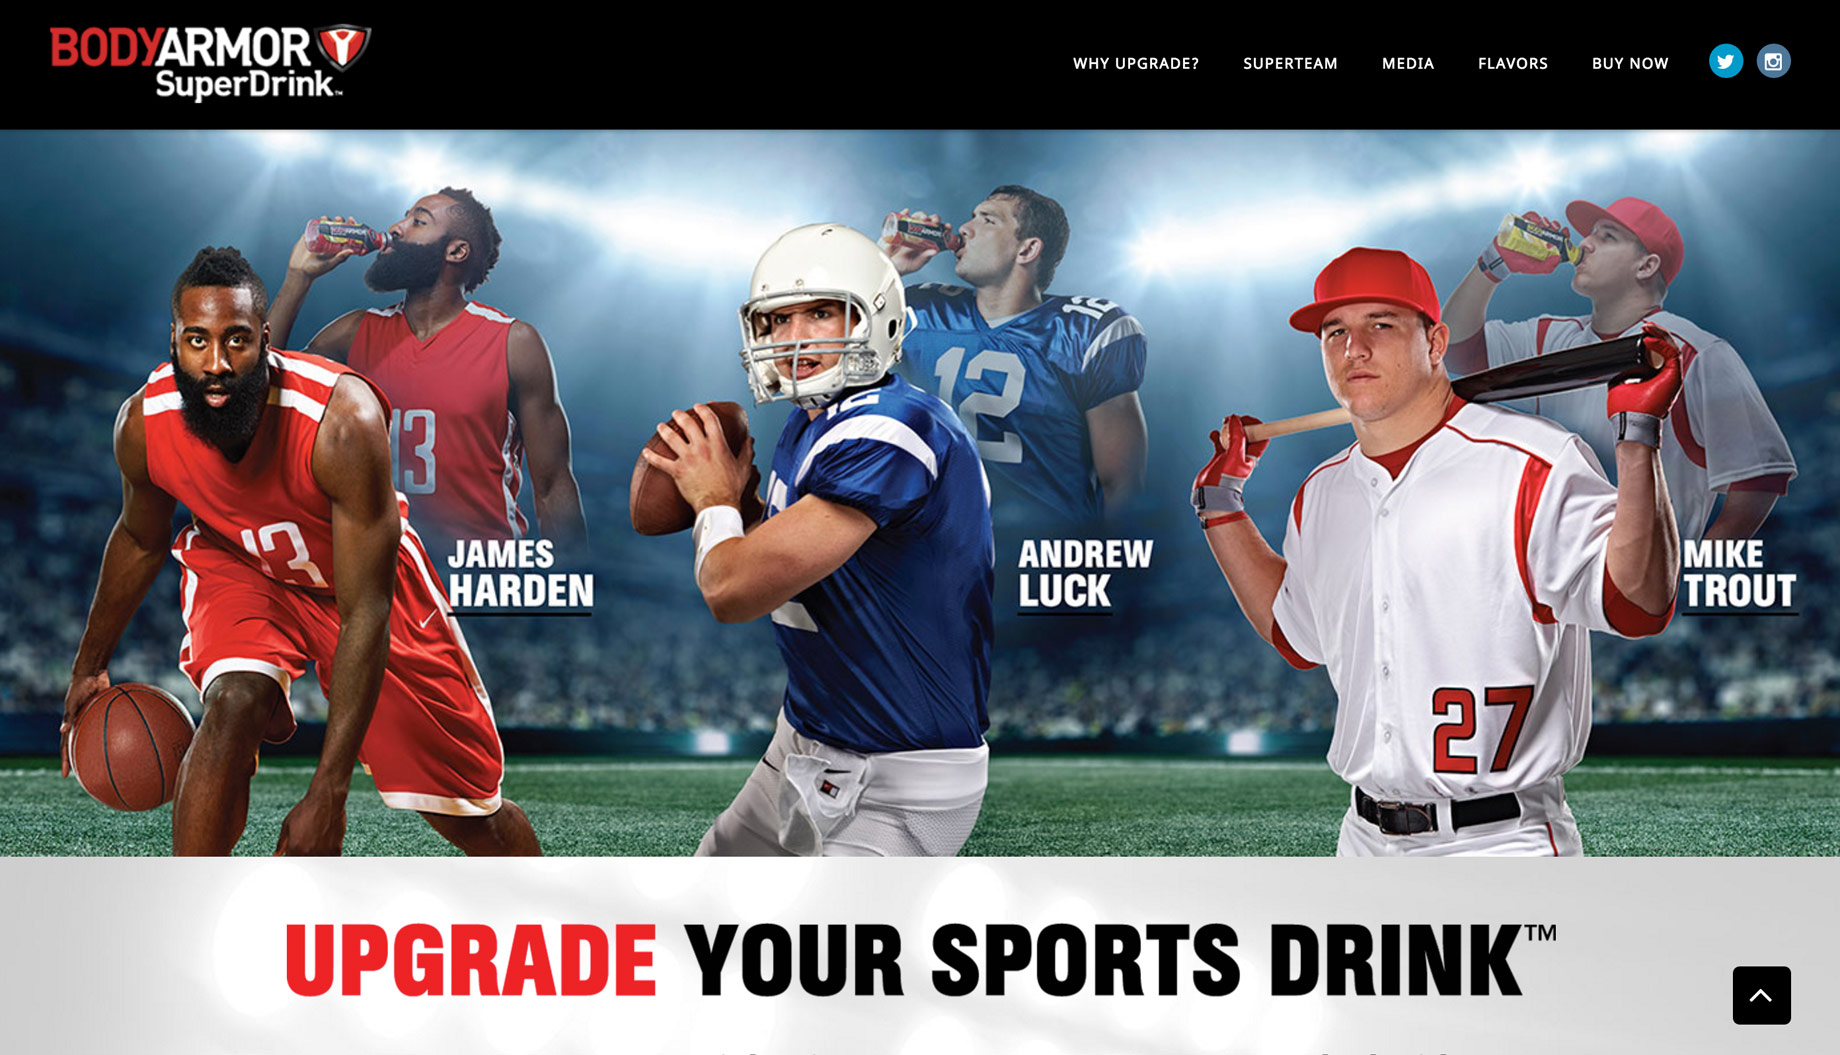 James Harden, Andrew Luck and Mike Trout for BodyArmor SuperDrink photos by Monte Isom